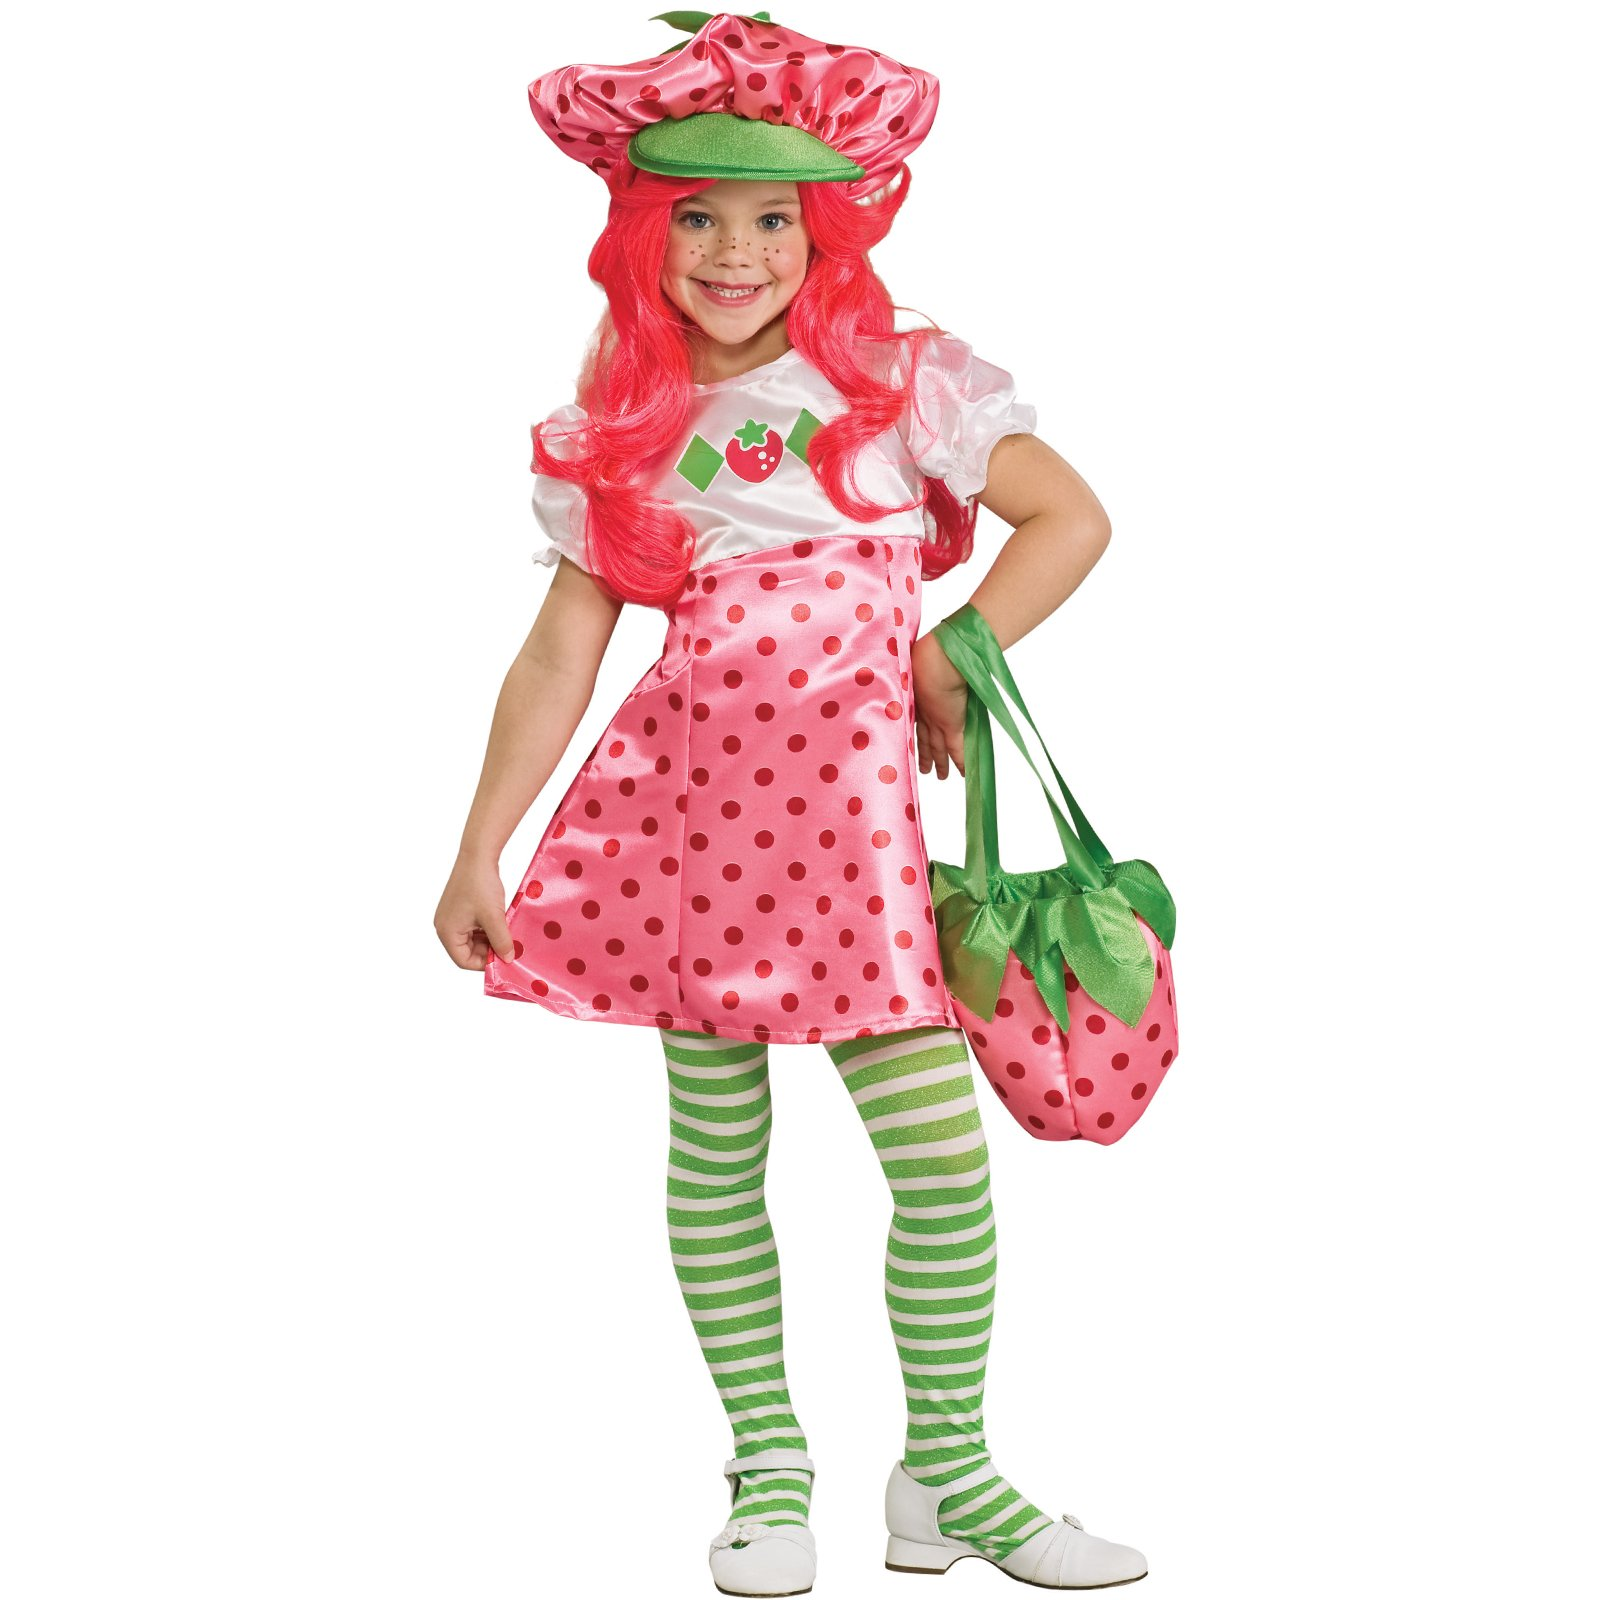 Strawberry Shortcake - Strawberry Shortcake Deluxe Toddler / Chi